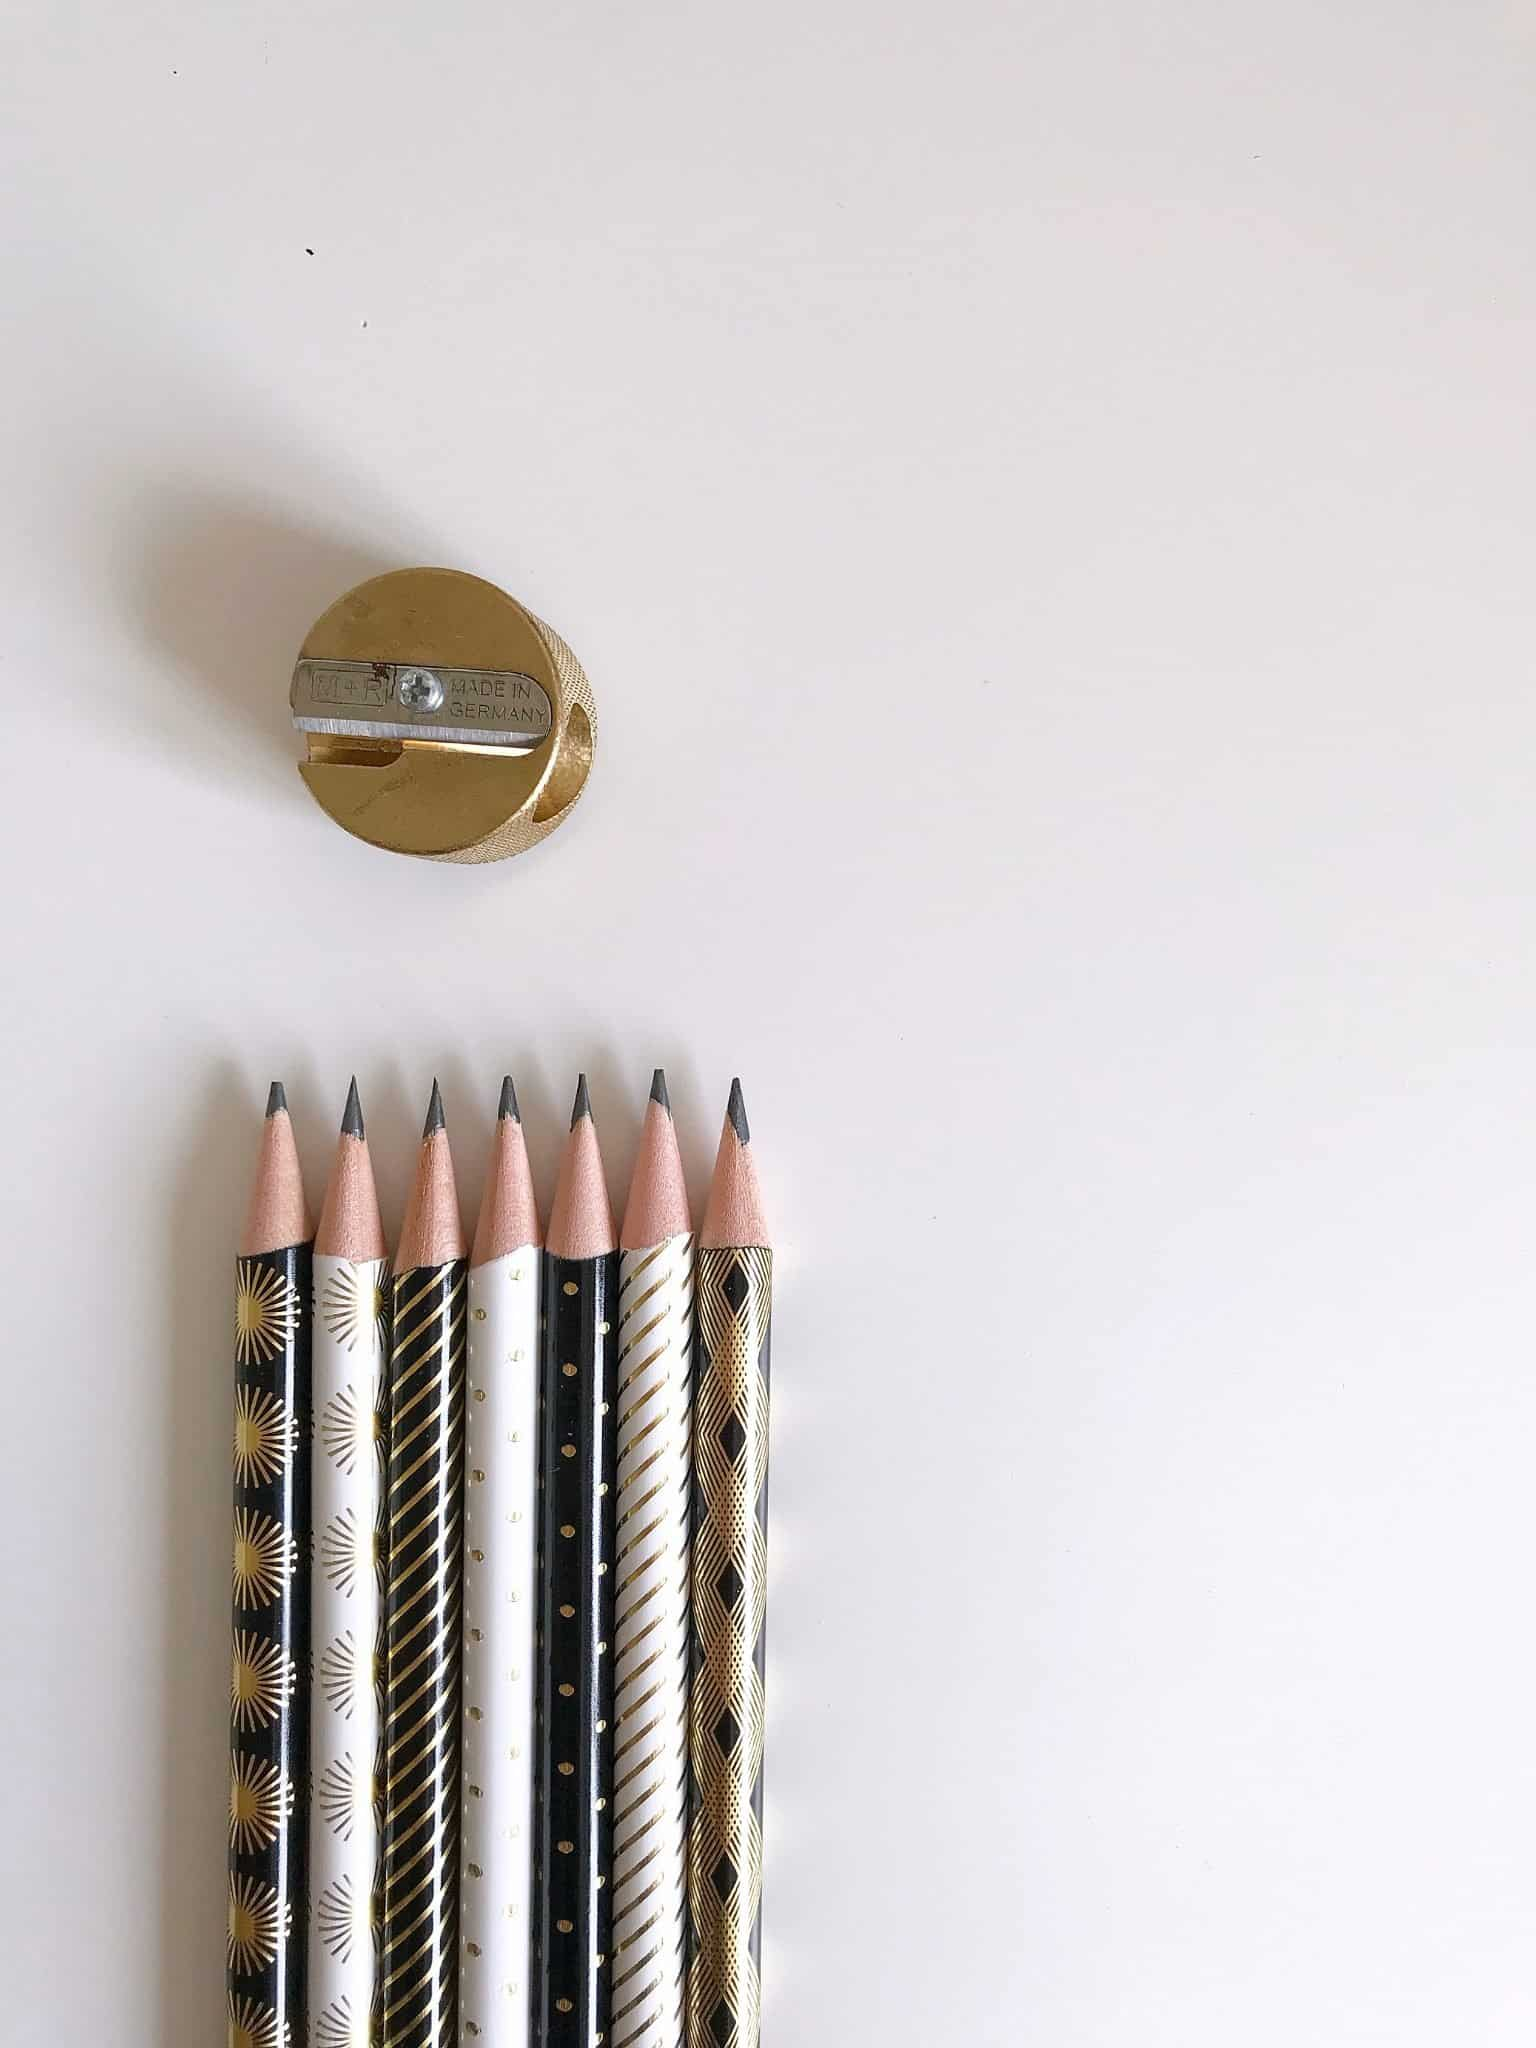 Black, white and gold pencils with a gold pencil sharpener